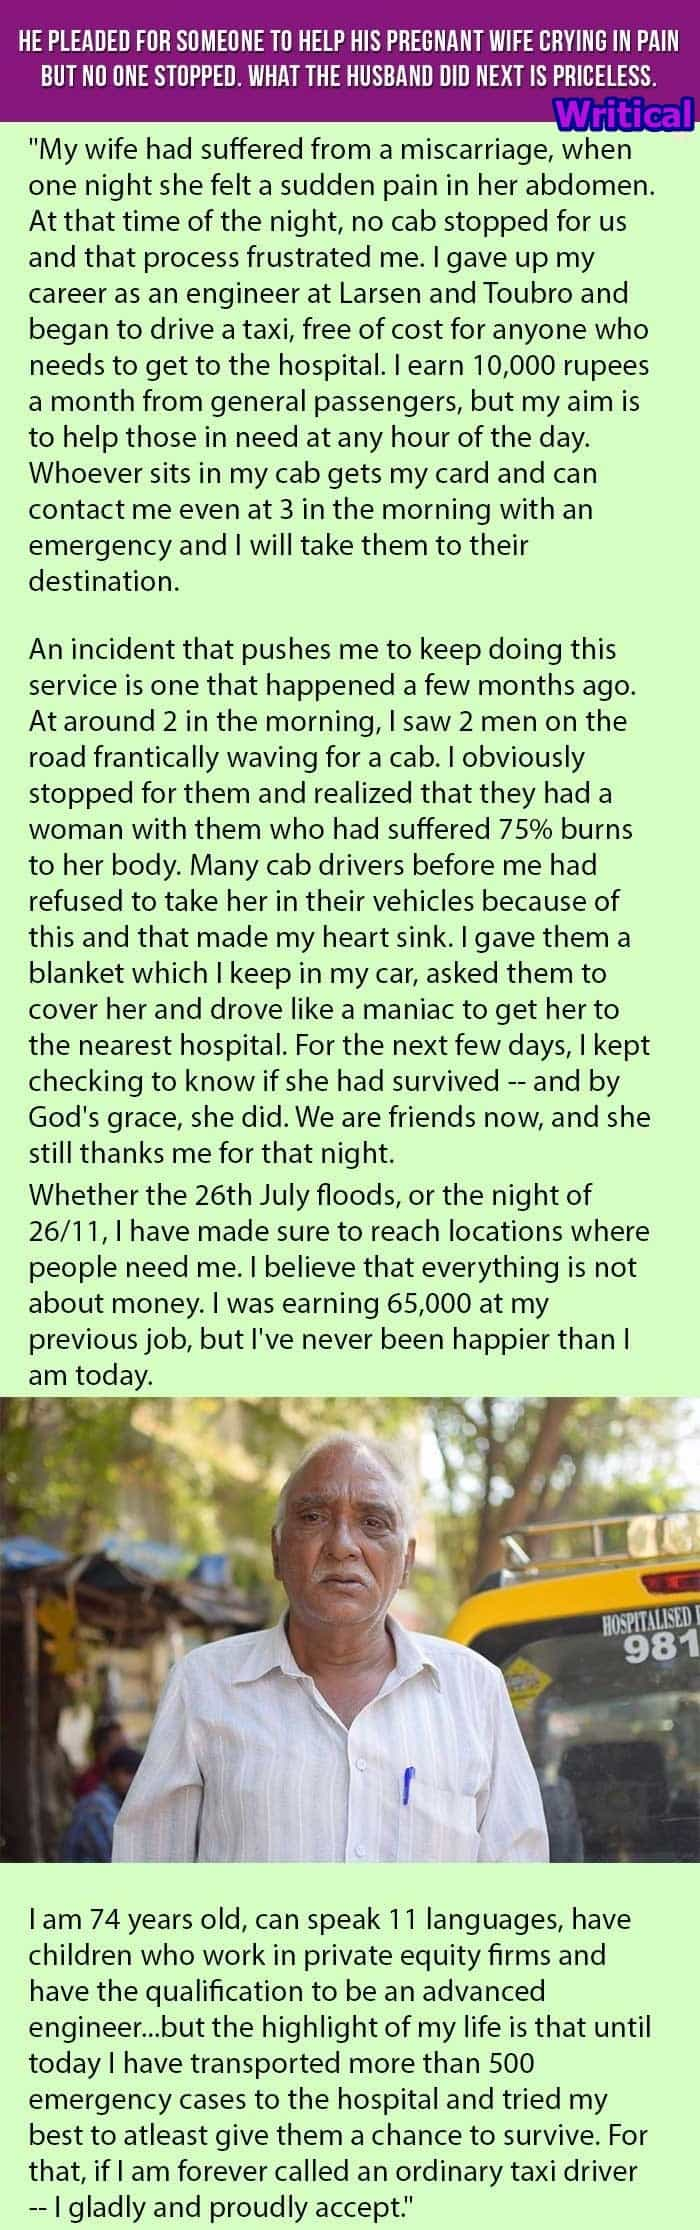 Heart touching act by this husband post the demise of his pregnant wife